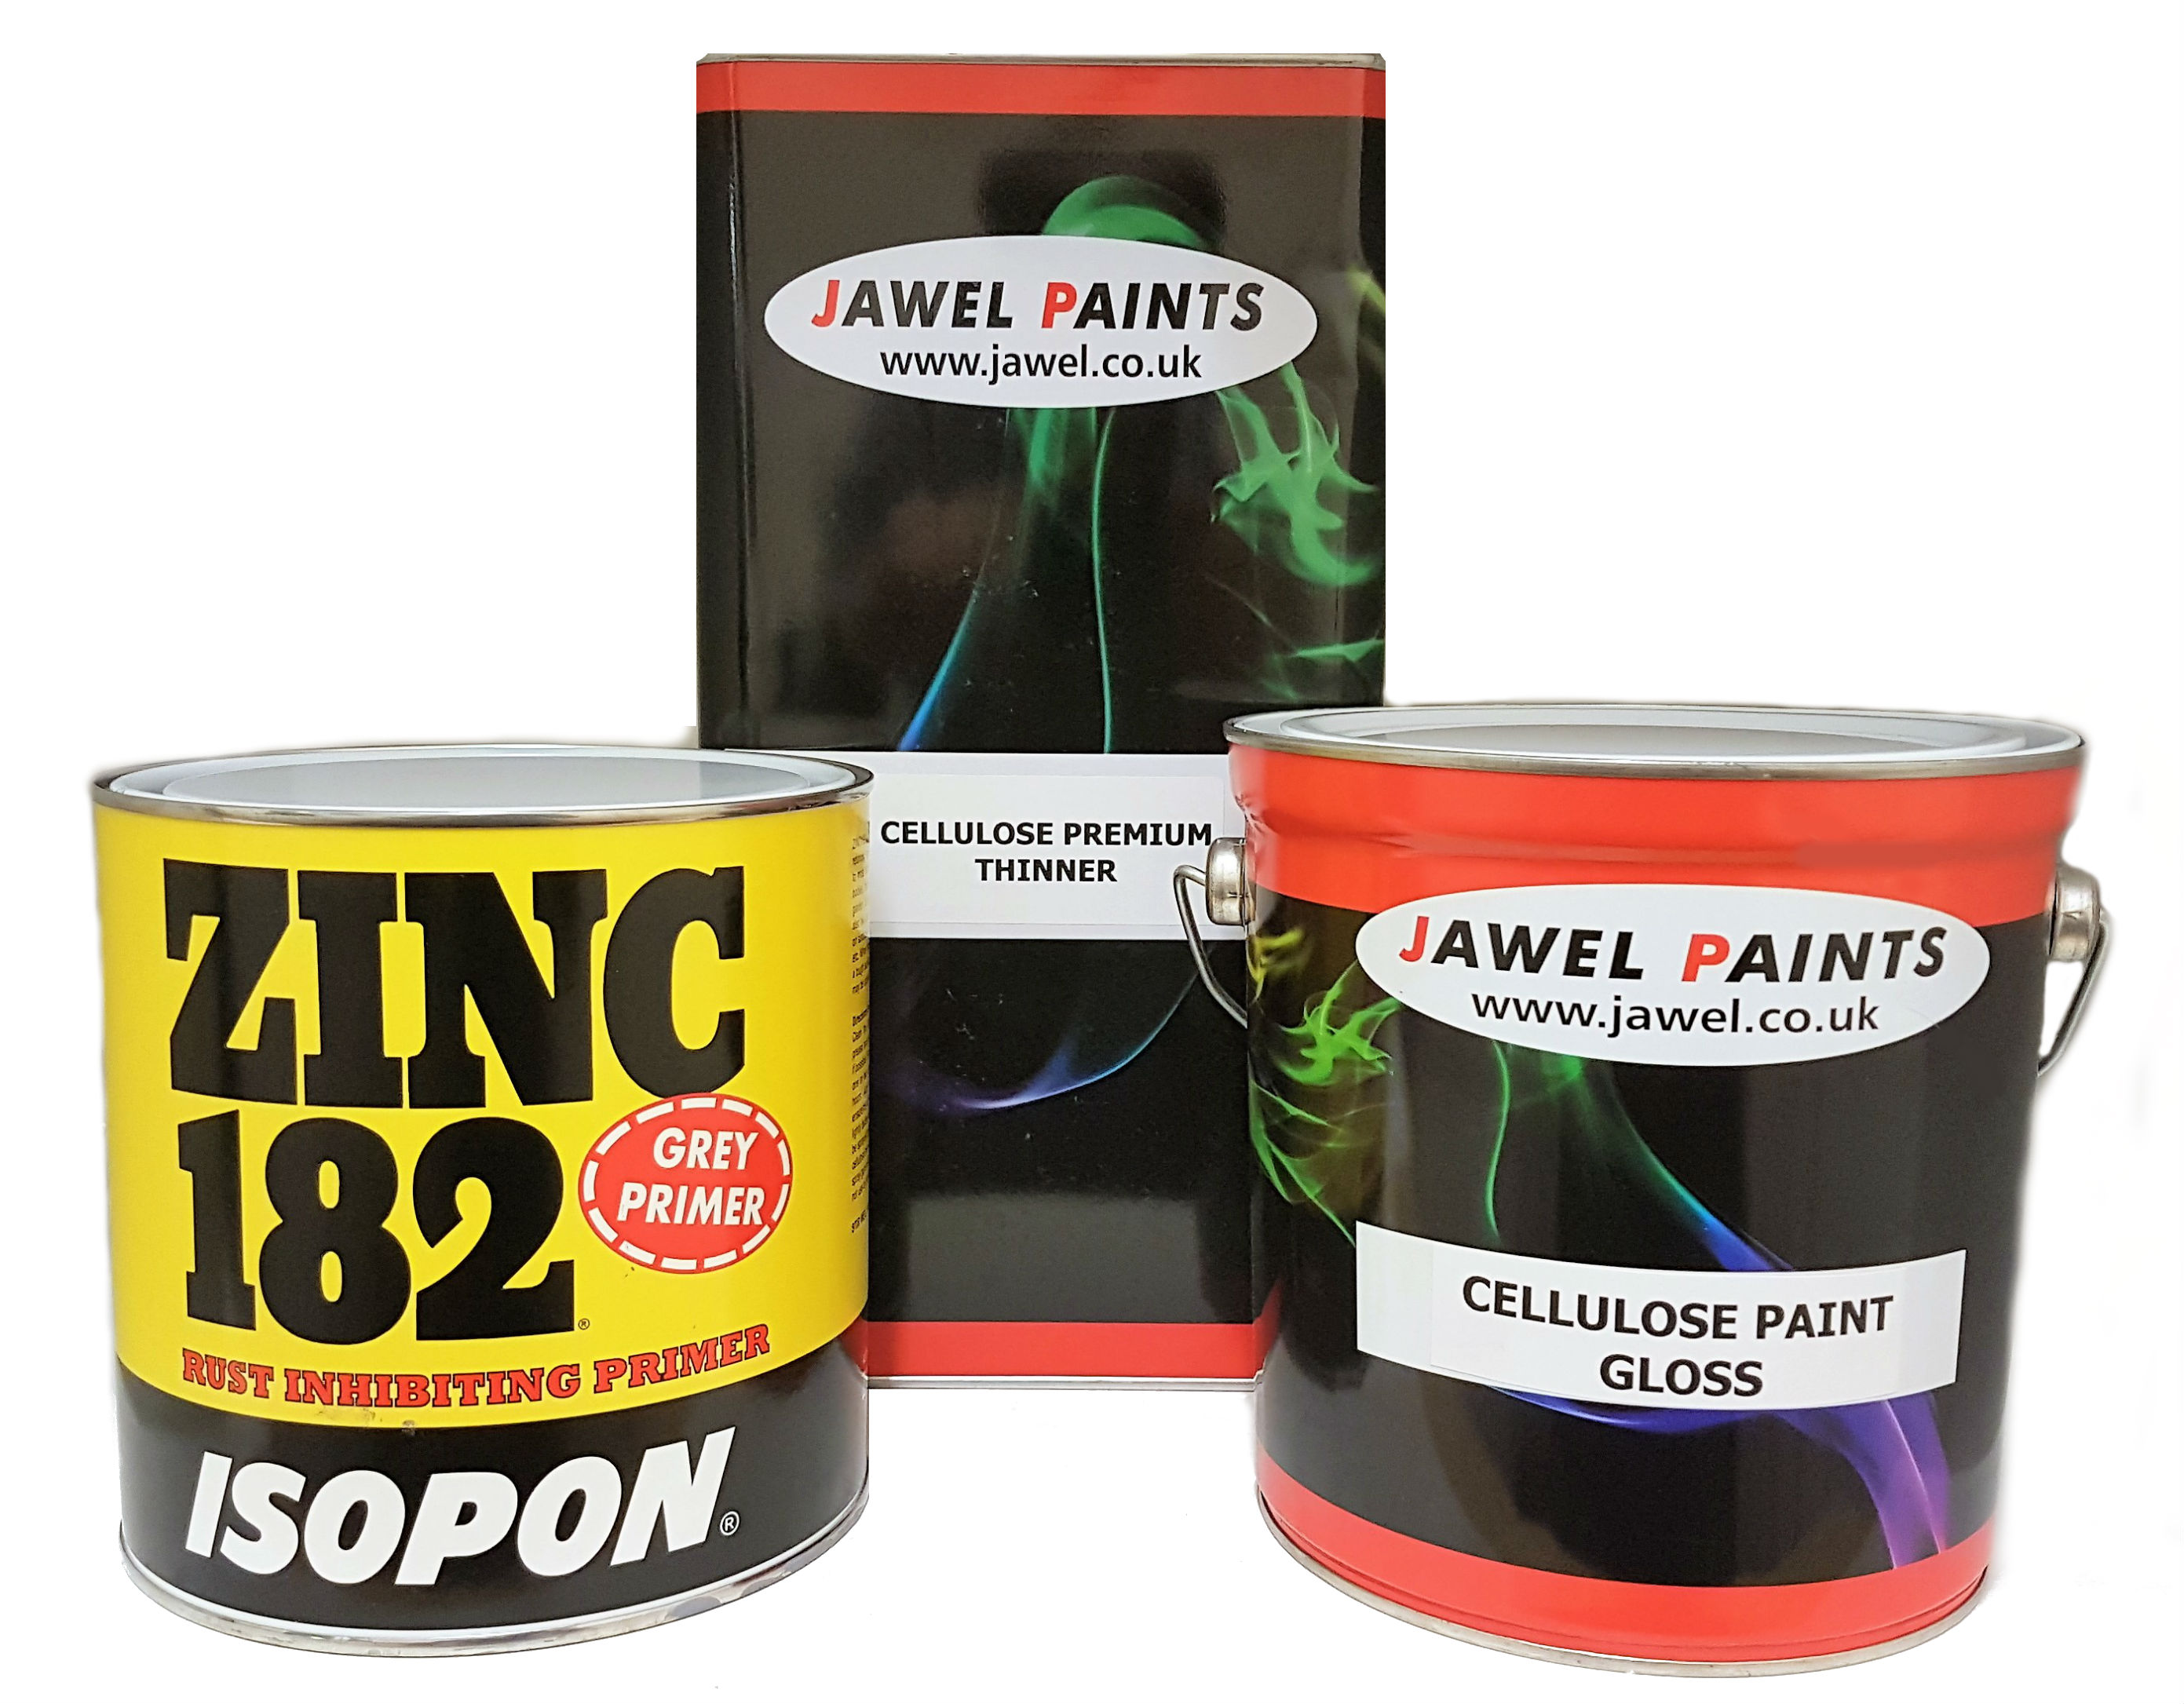 Cellulose Paint Bargain Kits